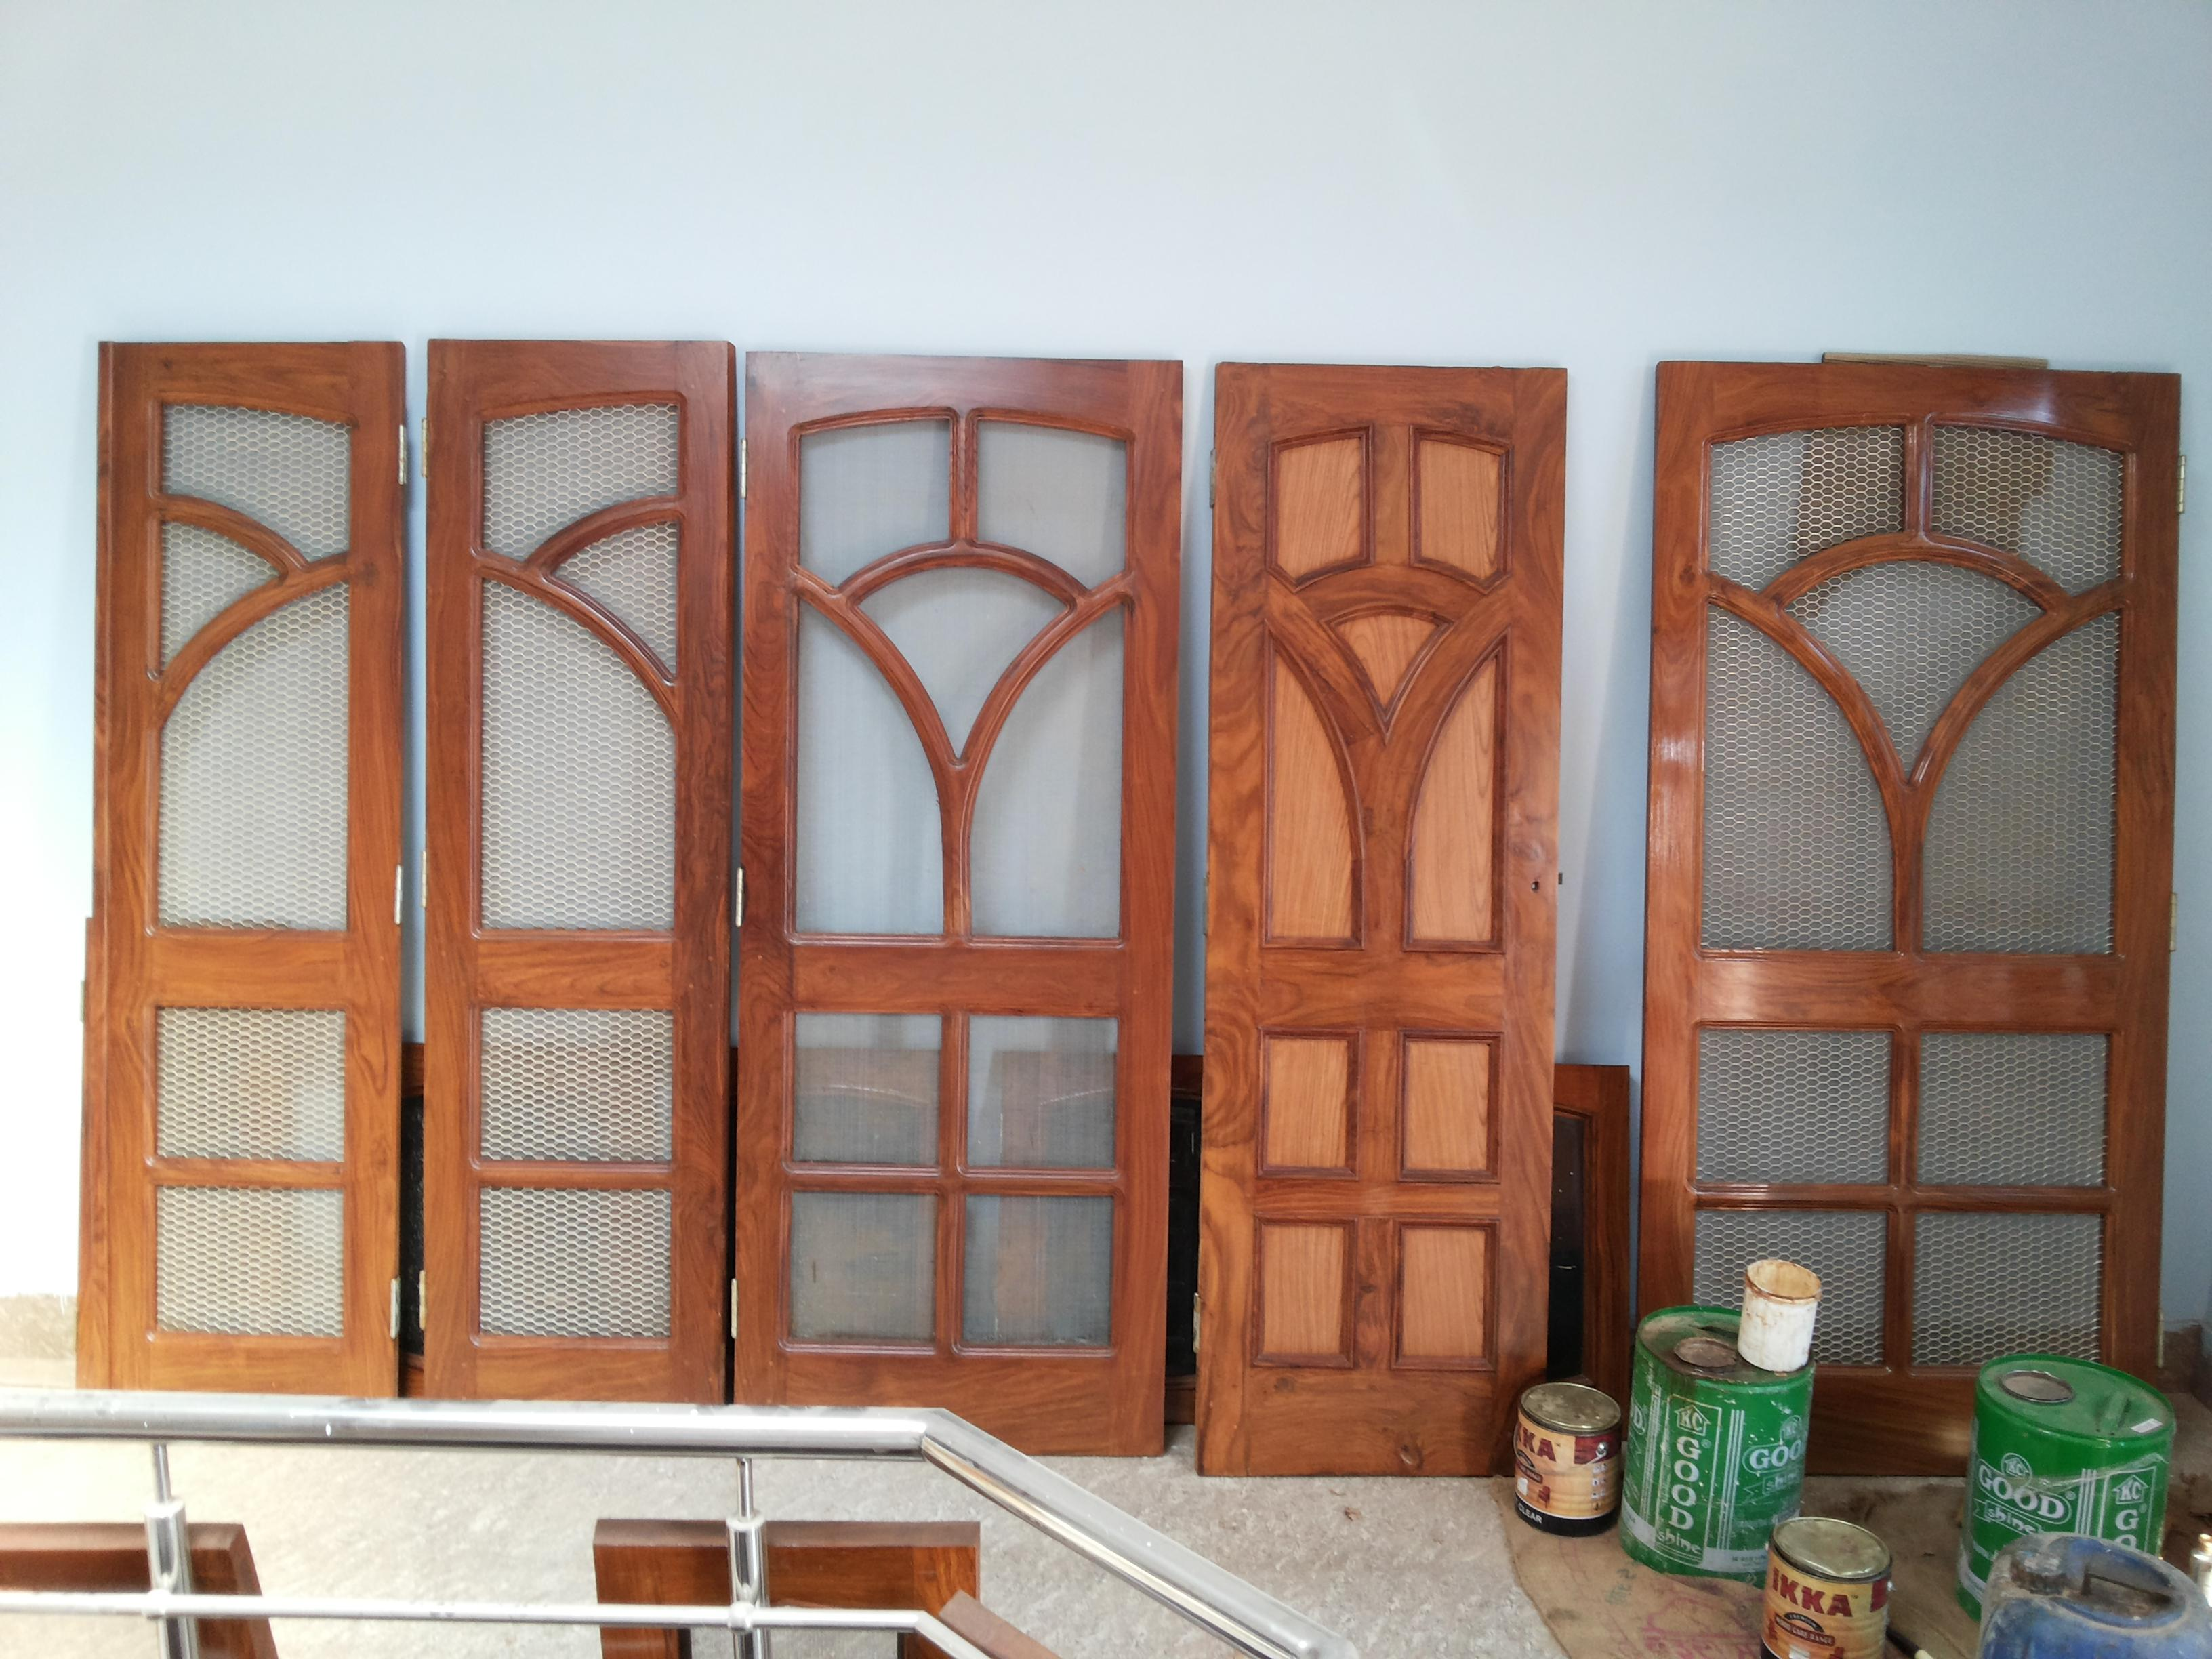 Latest Wooden Door Designs 2017 Mesh Doors Design In Wood Gharexpert